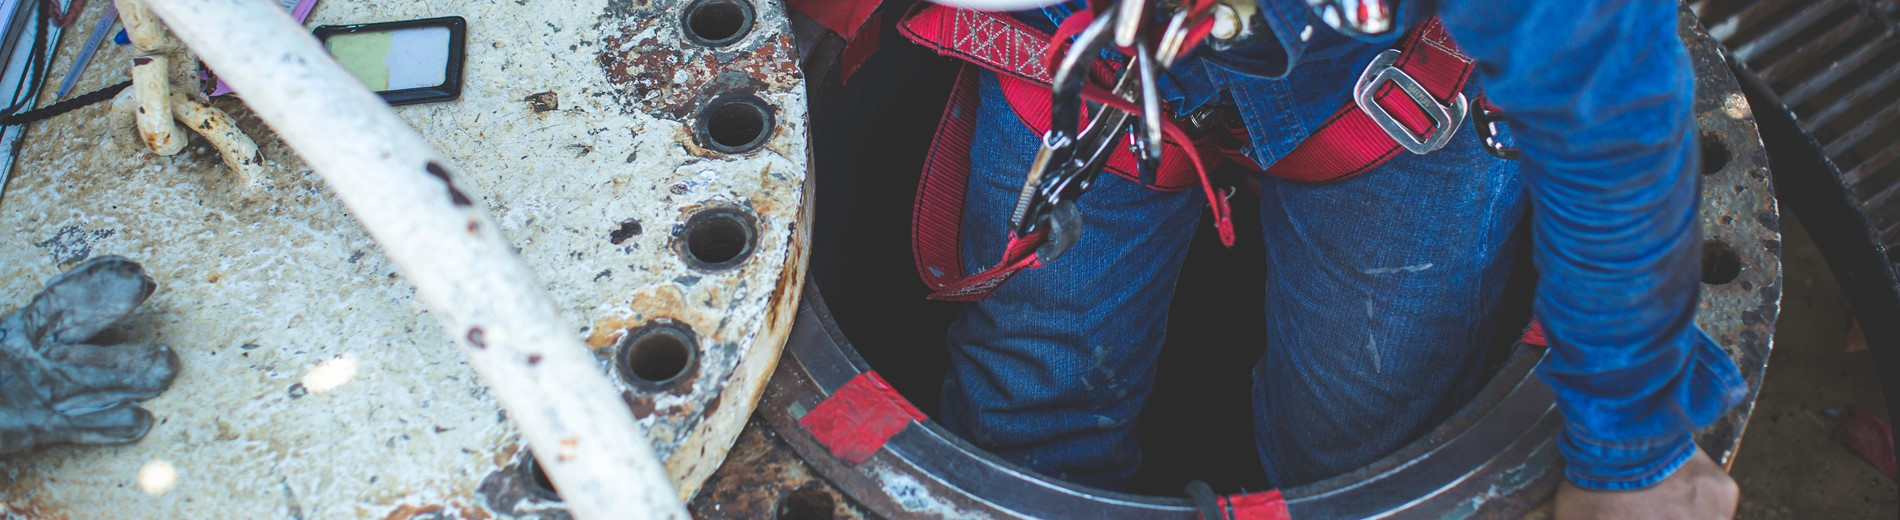 Online Working in Confined Spaces